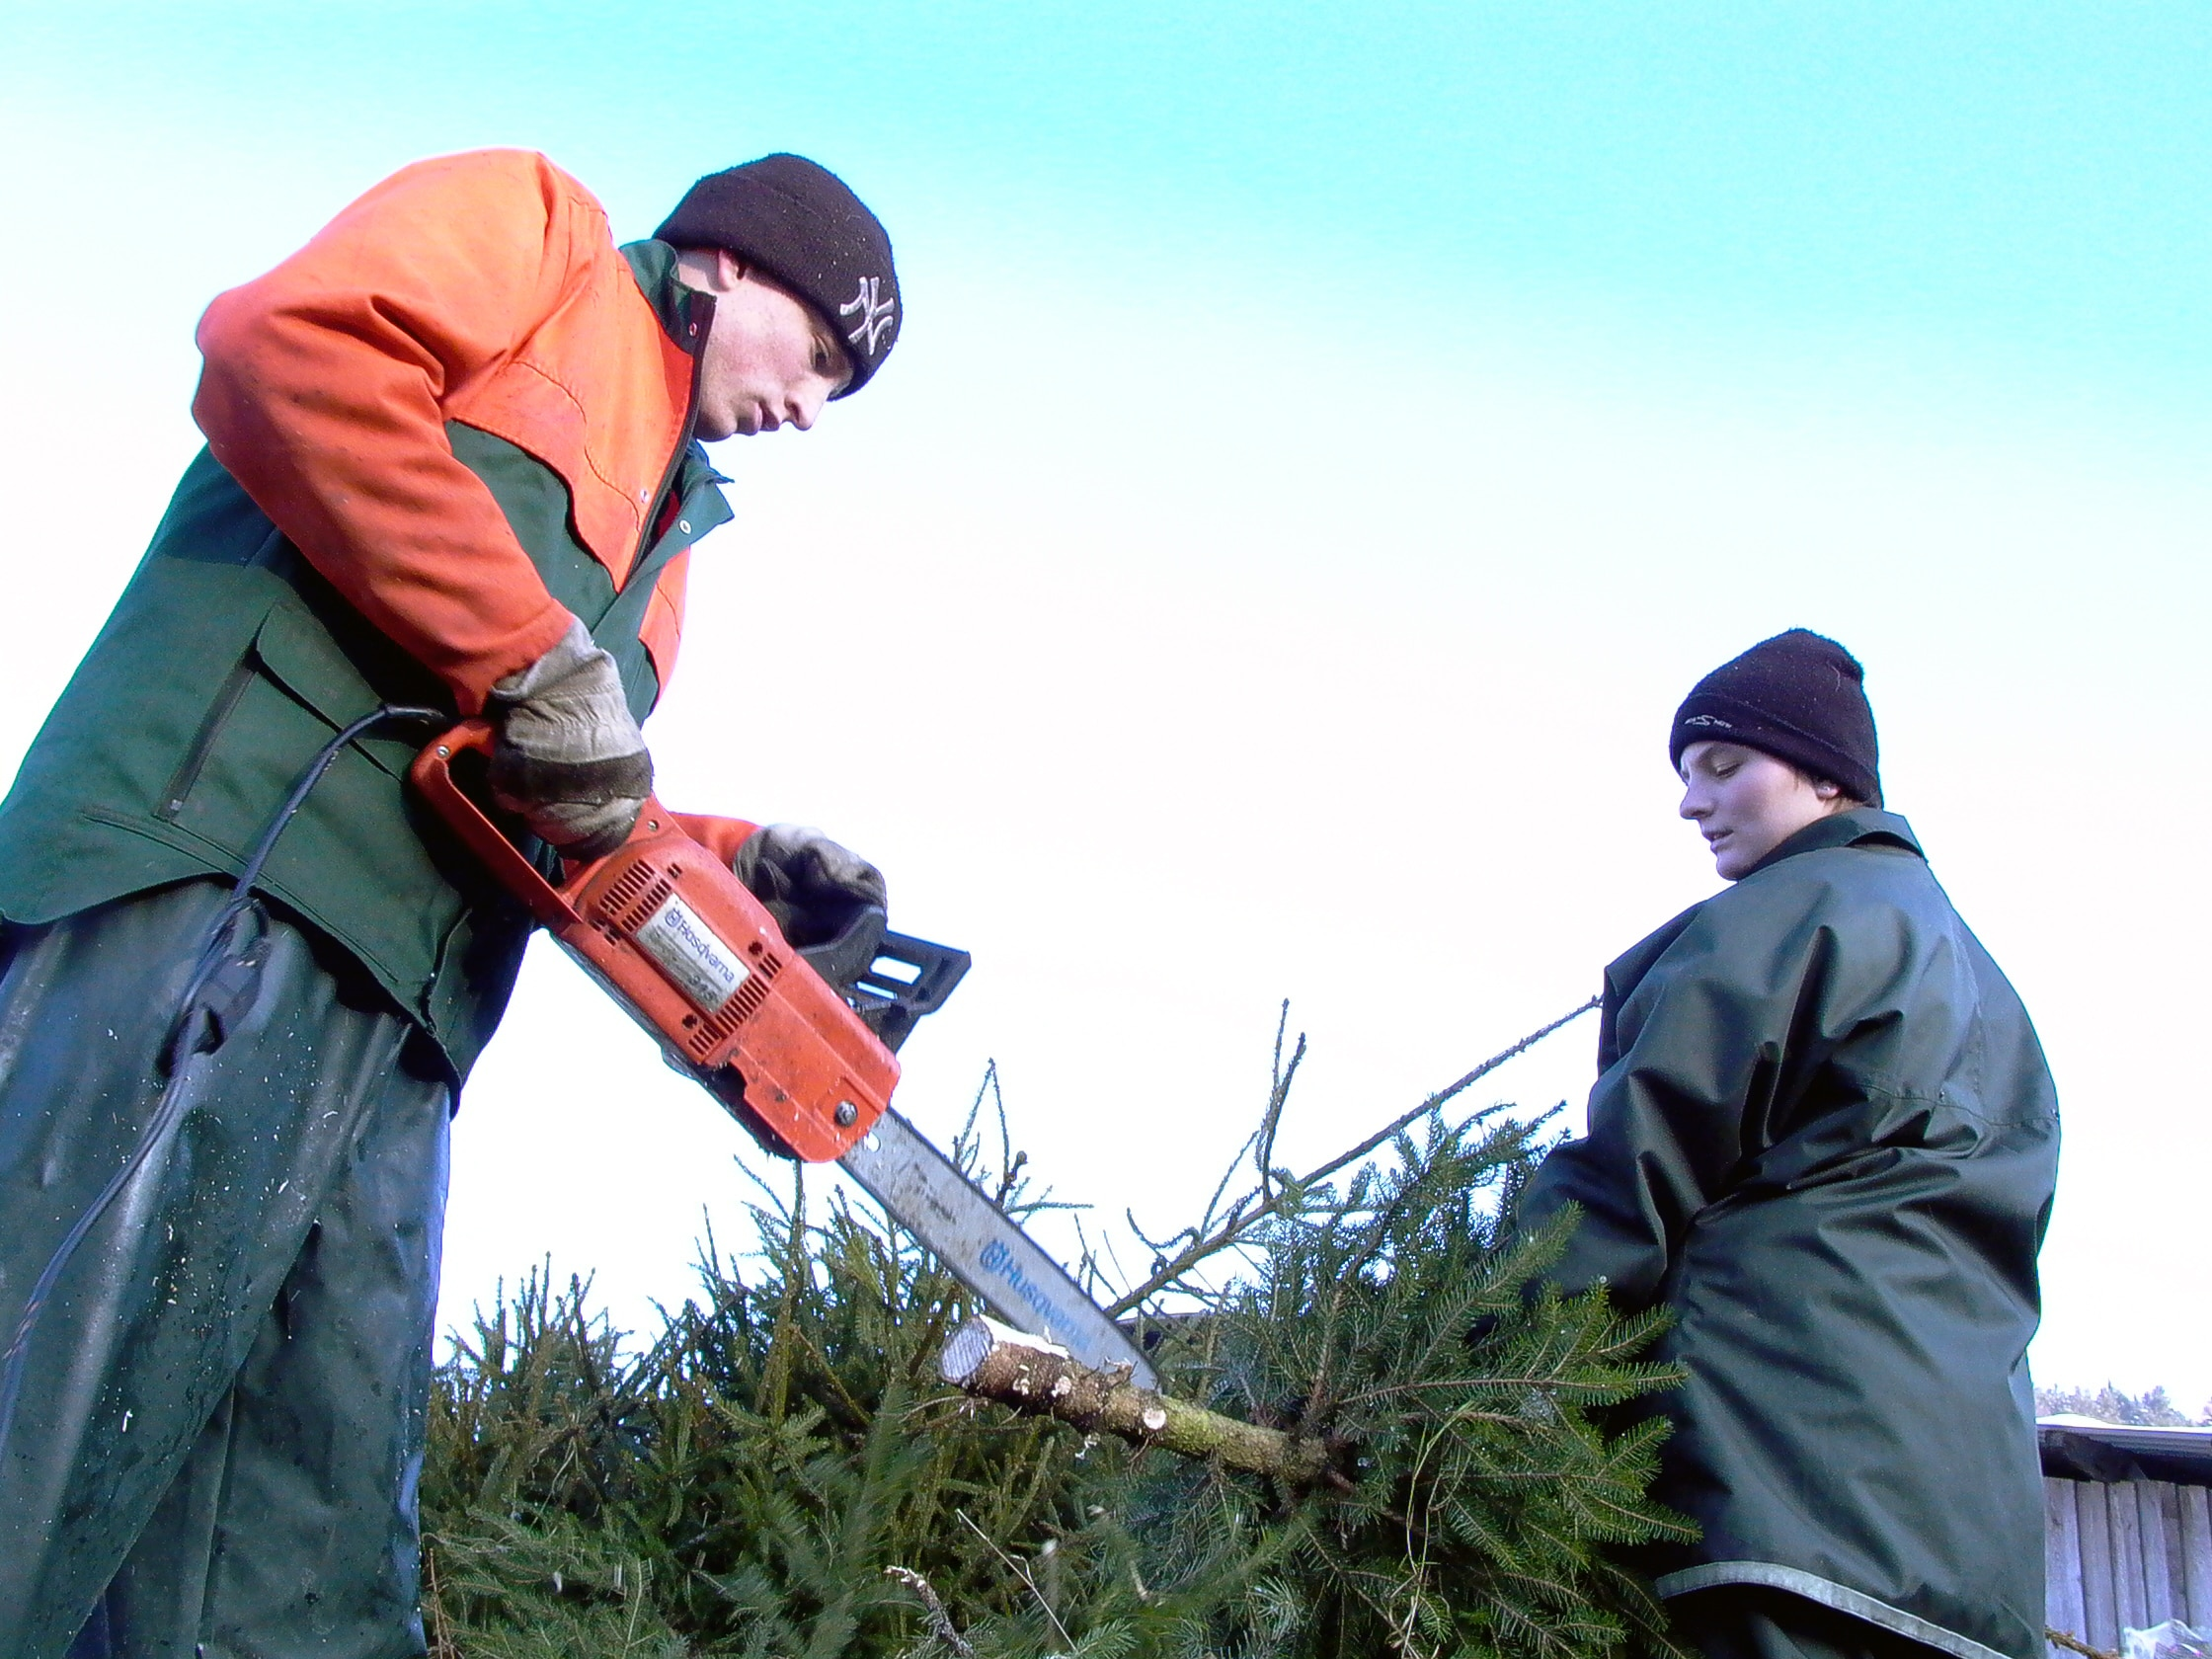 Luder needs lots of help during the cold days of December to get his trees ready for market.